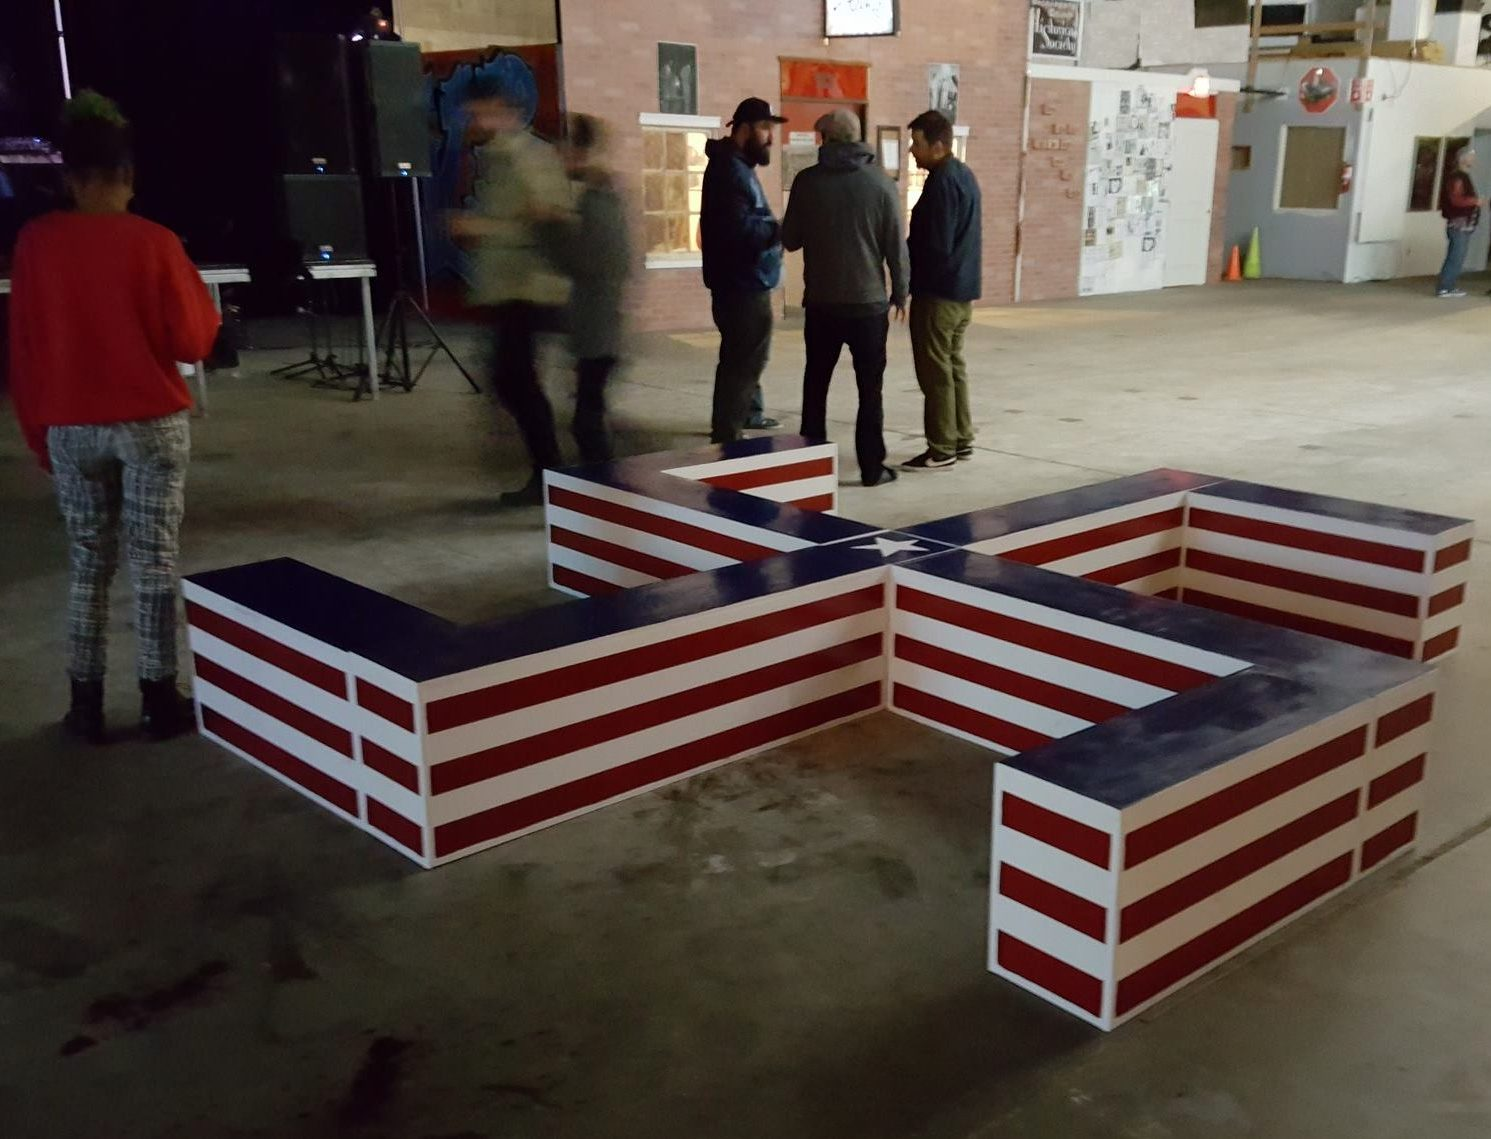 The wooden swastika-shaped bench painted with red, white and blue stripes was displayed at the abandoned warehouse on First Avenue — the location of ArtStreet — before being removed by the event coordinators. (Photo courtesy of Heston Hurley)